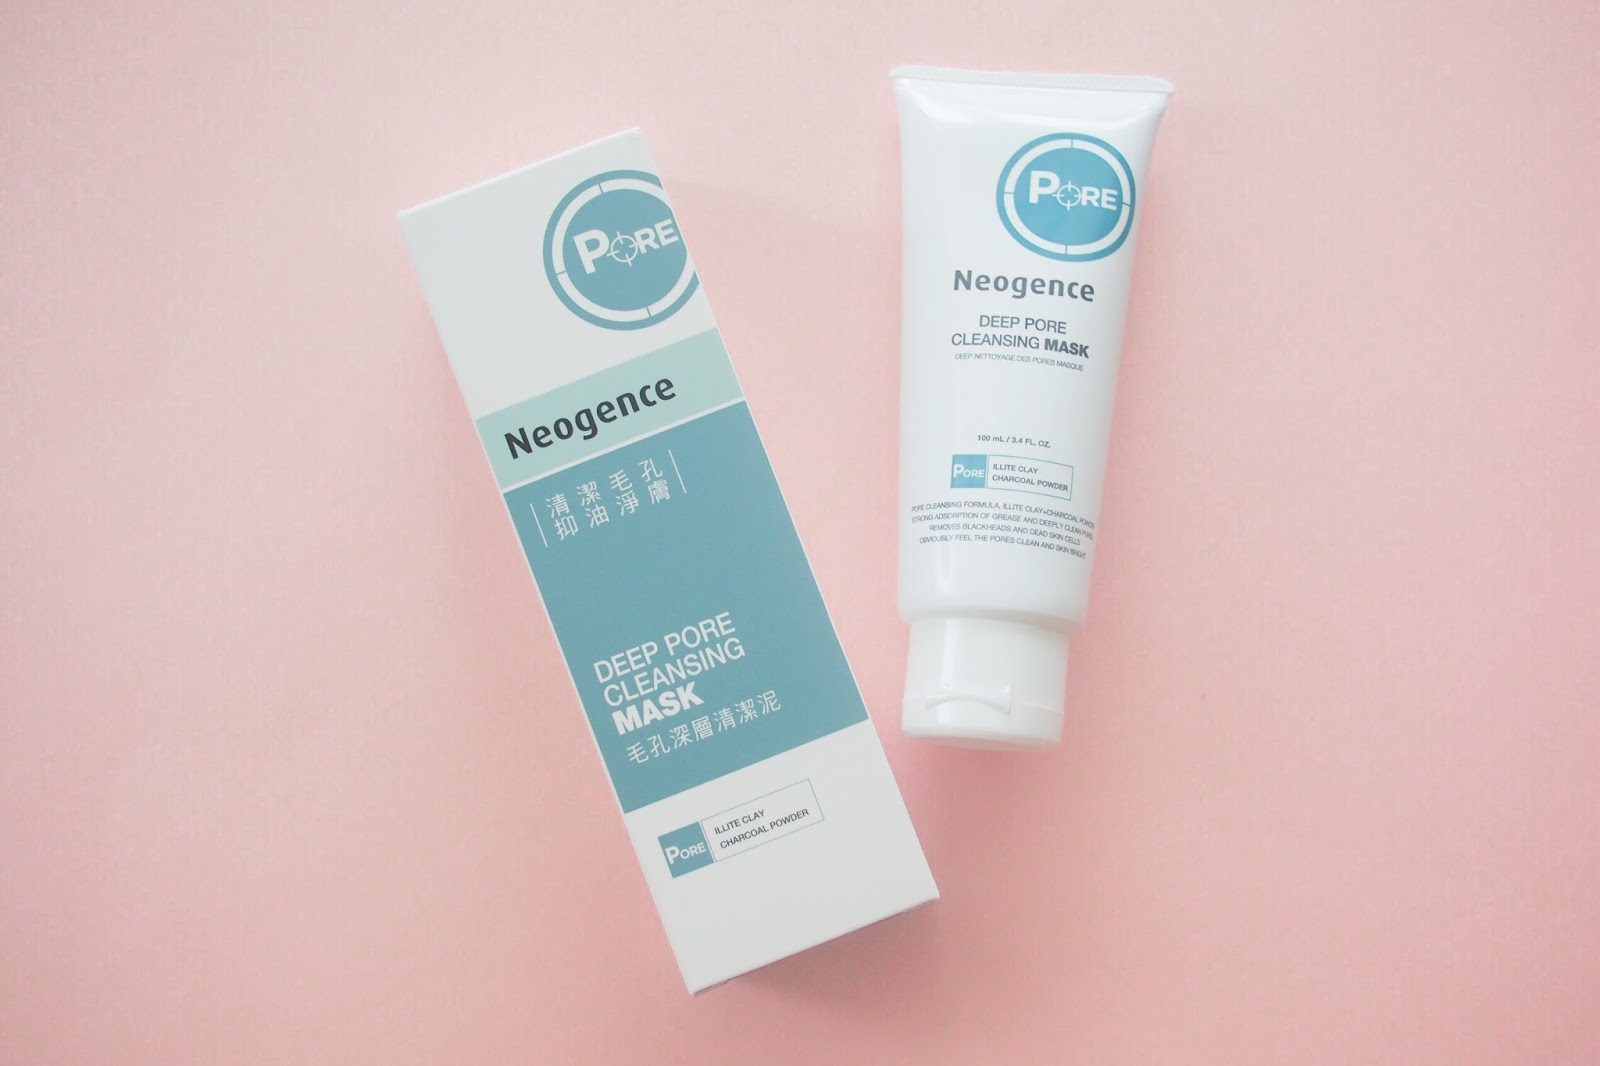 2d3693b0f06 I have to declare my love for deep pore clay masks right here and this is  currently one of my top favorites. Neogence Deep Pore Cleansing Mask  combines ...